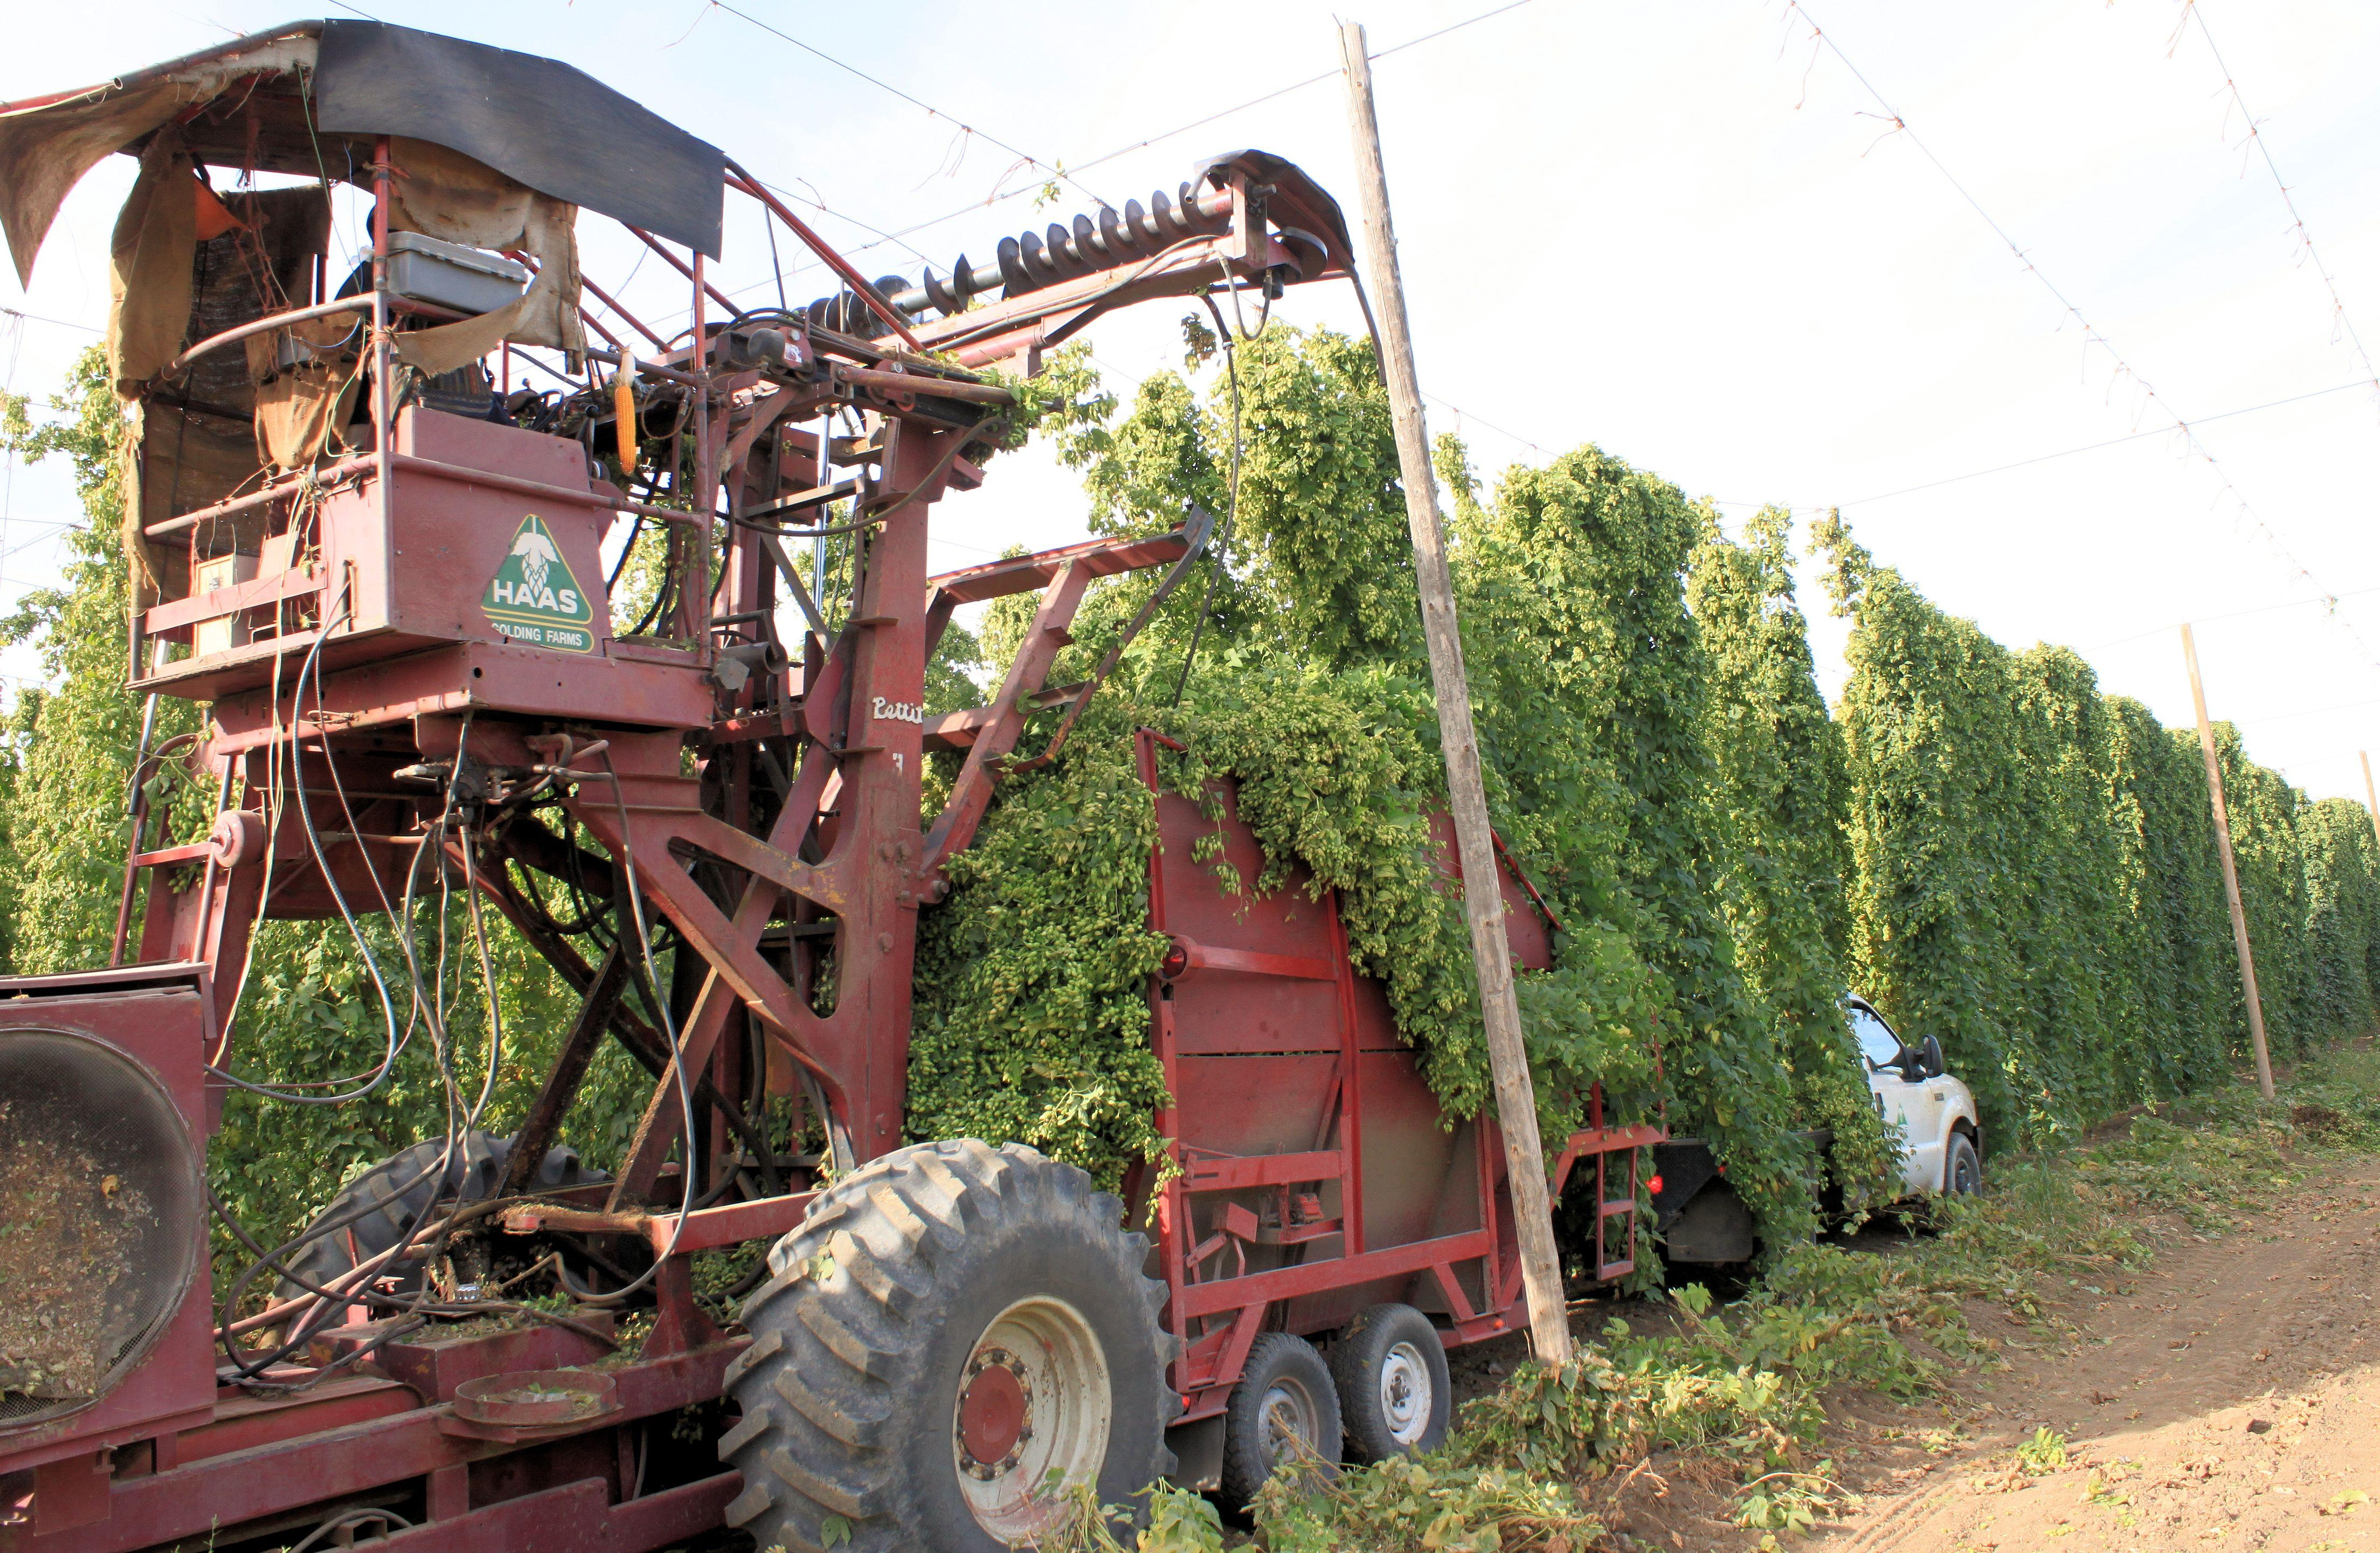 07 Hop harvest - top cutter dropping vines into trailer for transport to the processing plant nearby